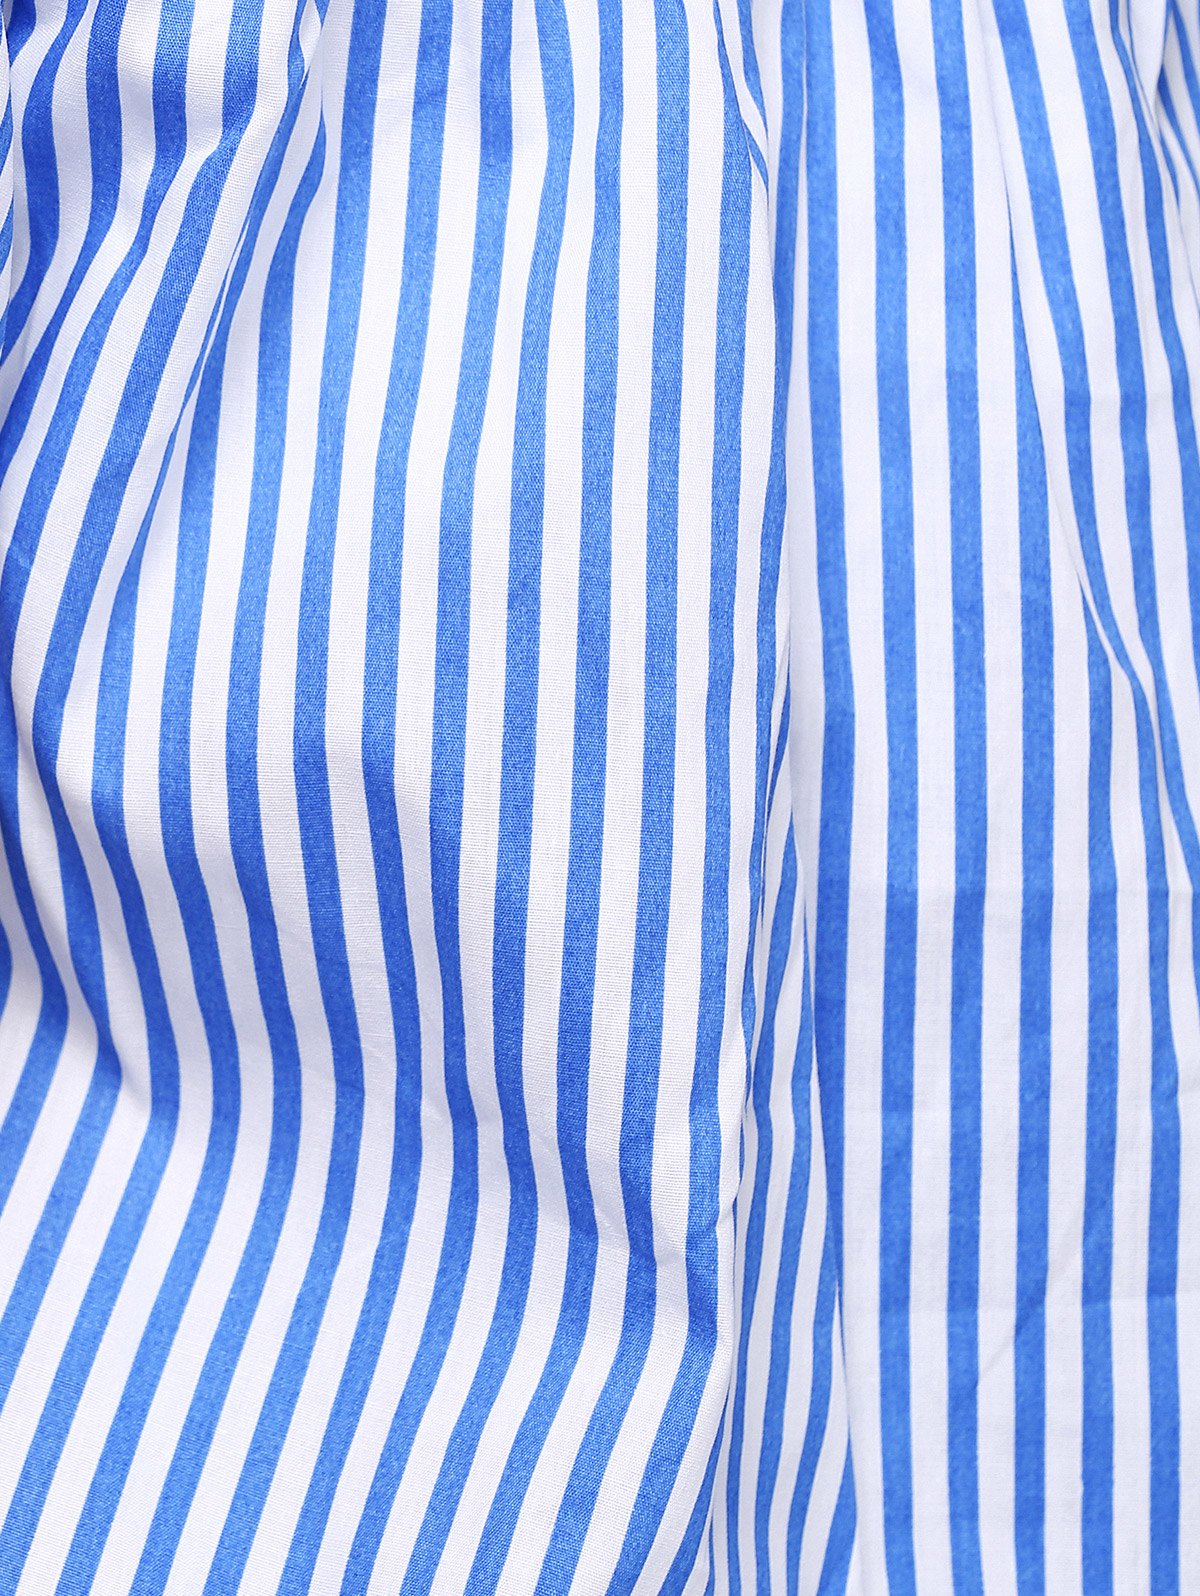 Stylish Off The Shoulder Pinstriped Blouse For Women - BLUE/WHITE L